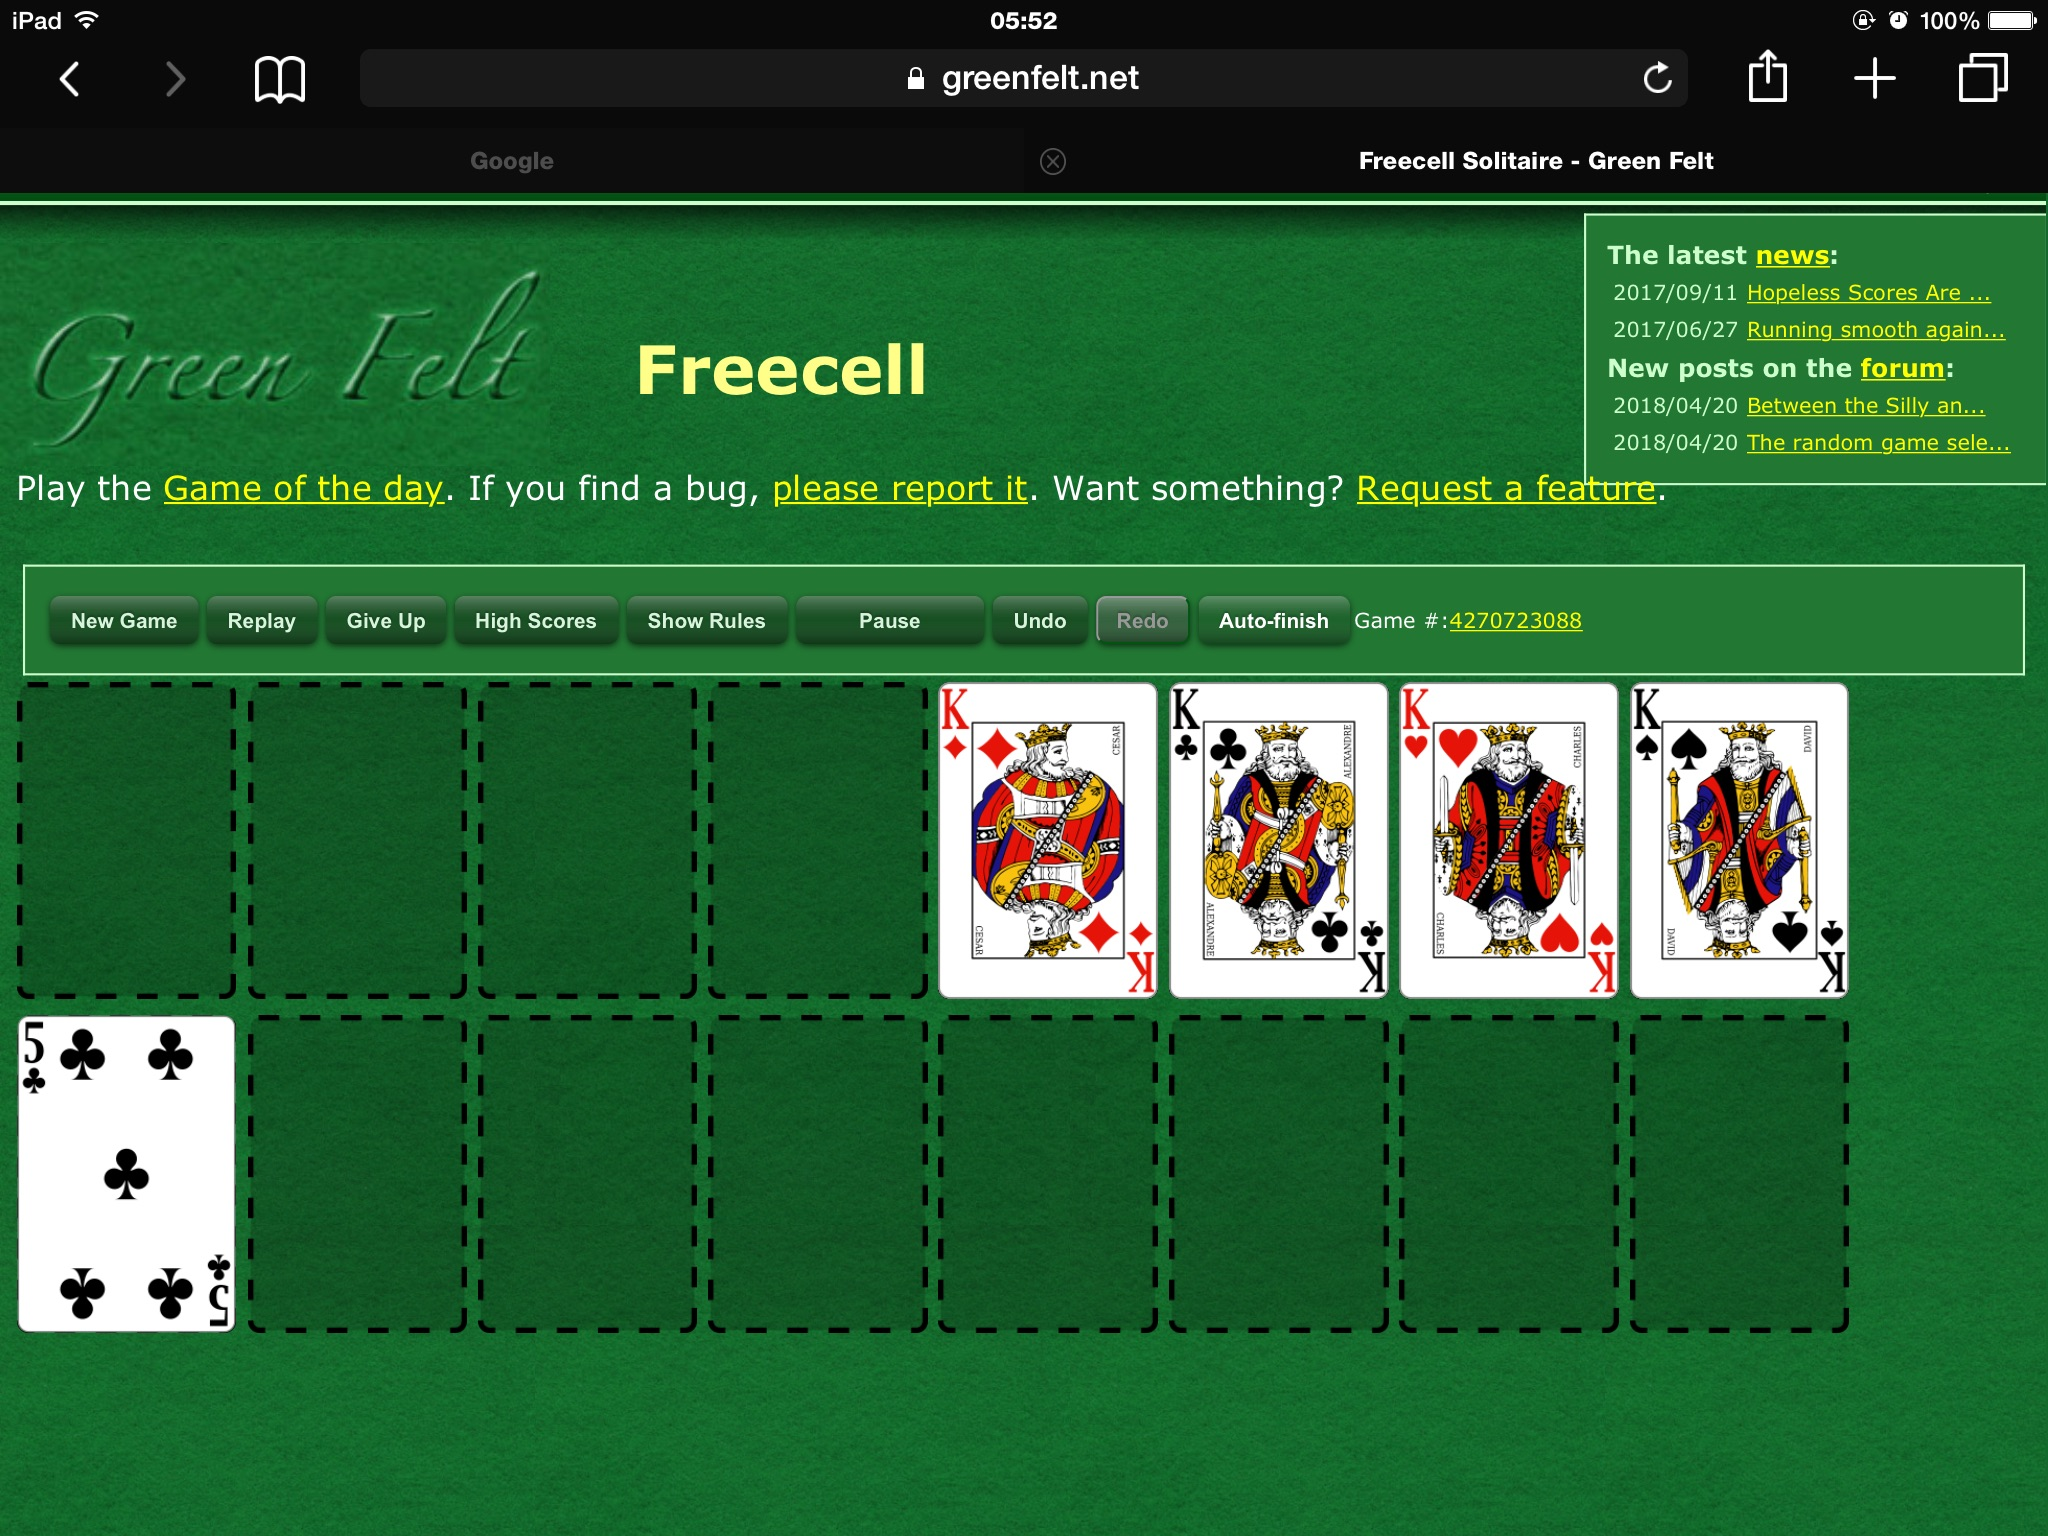 Freecell Greenfelt